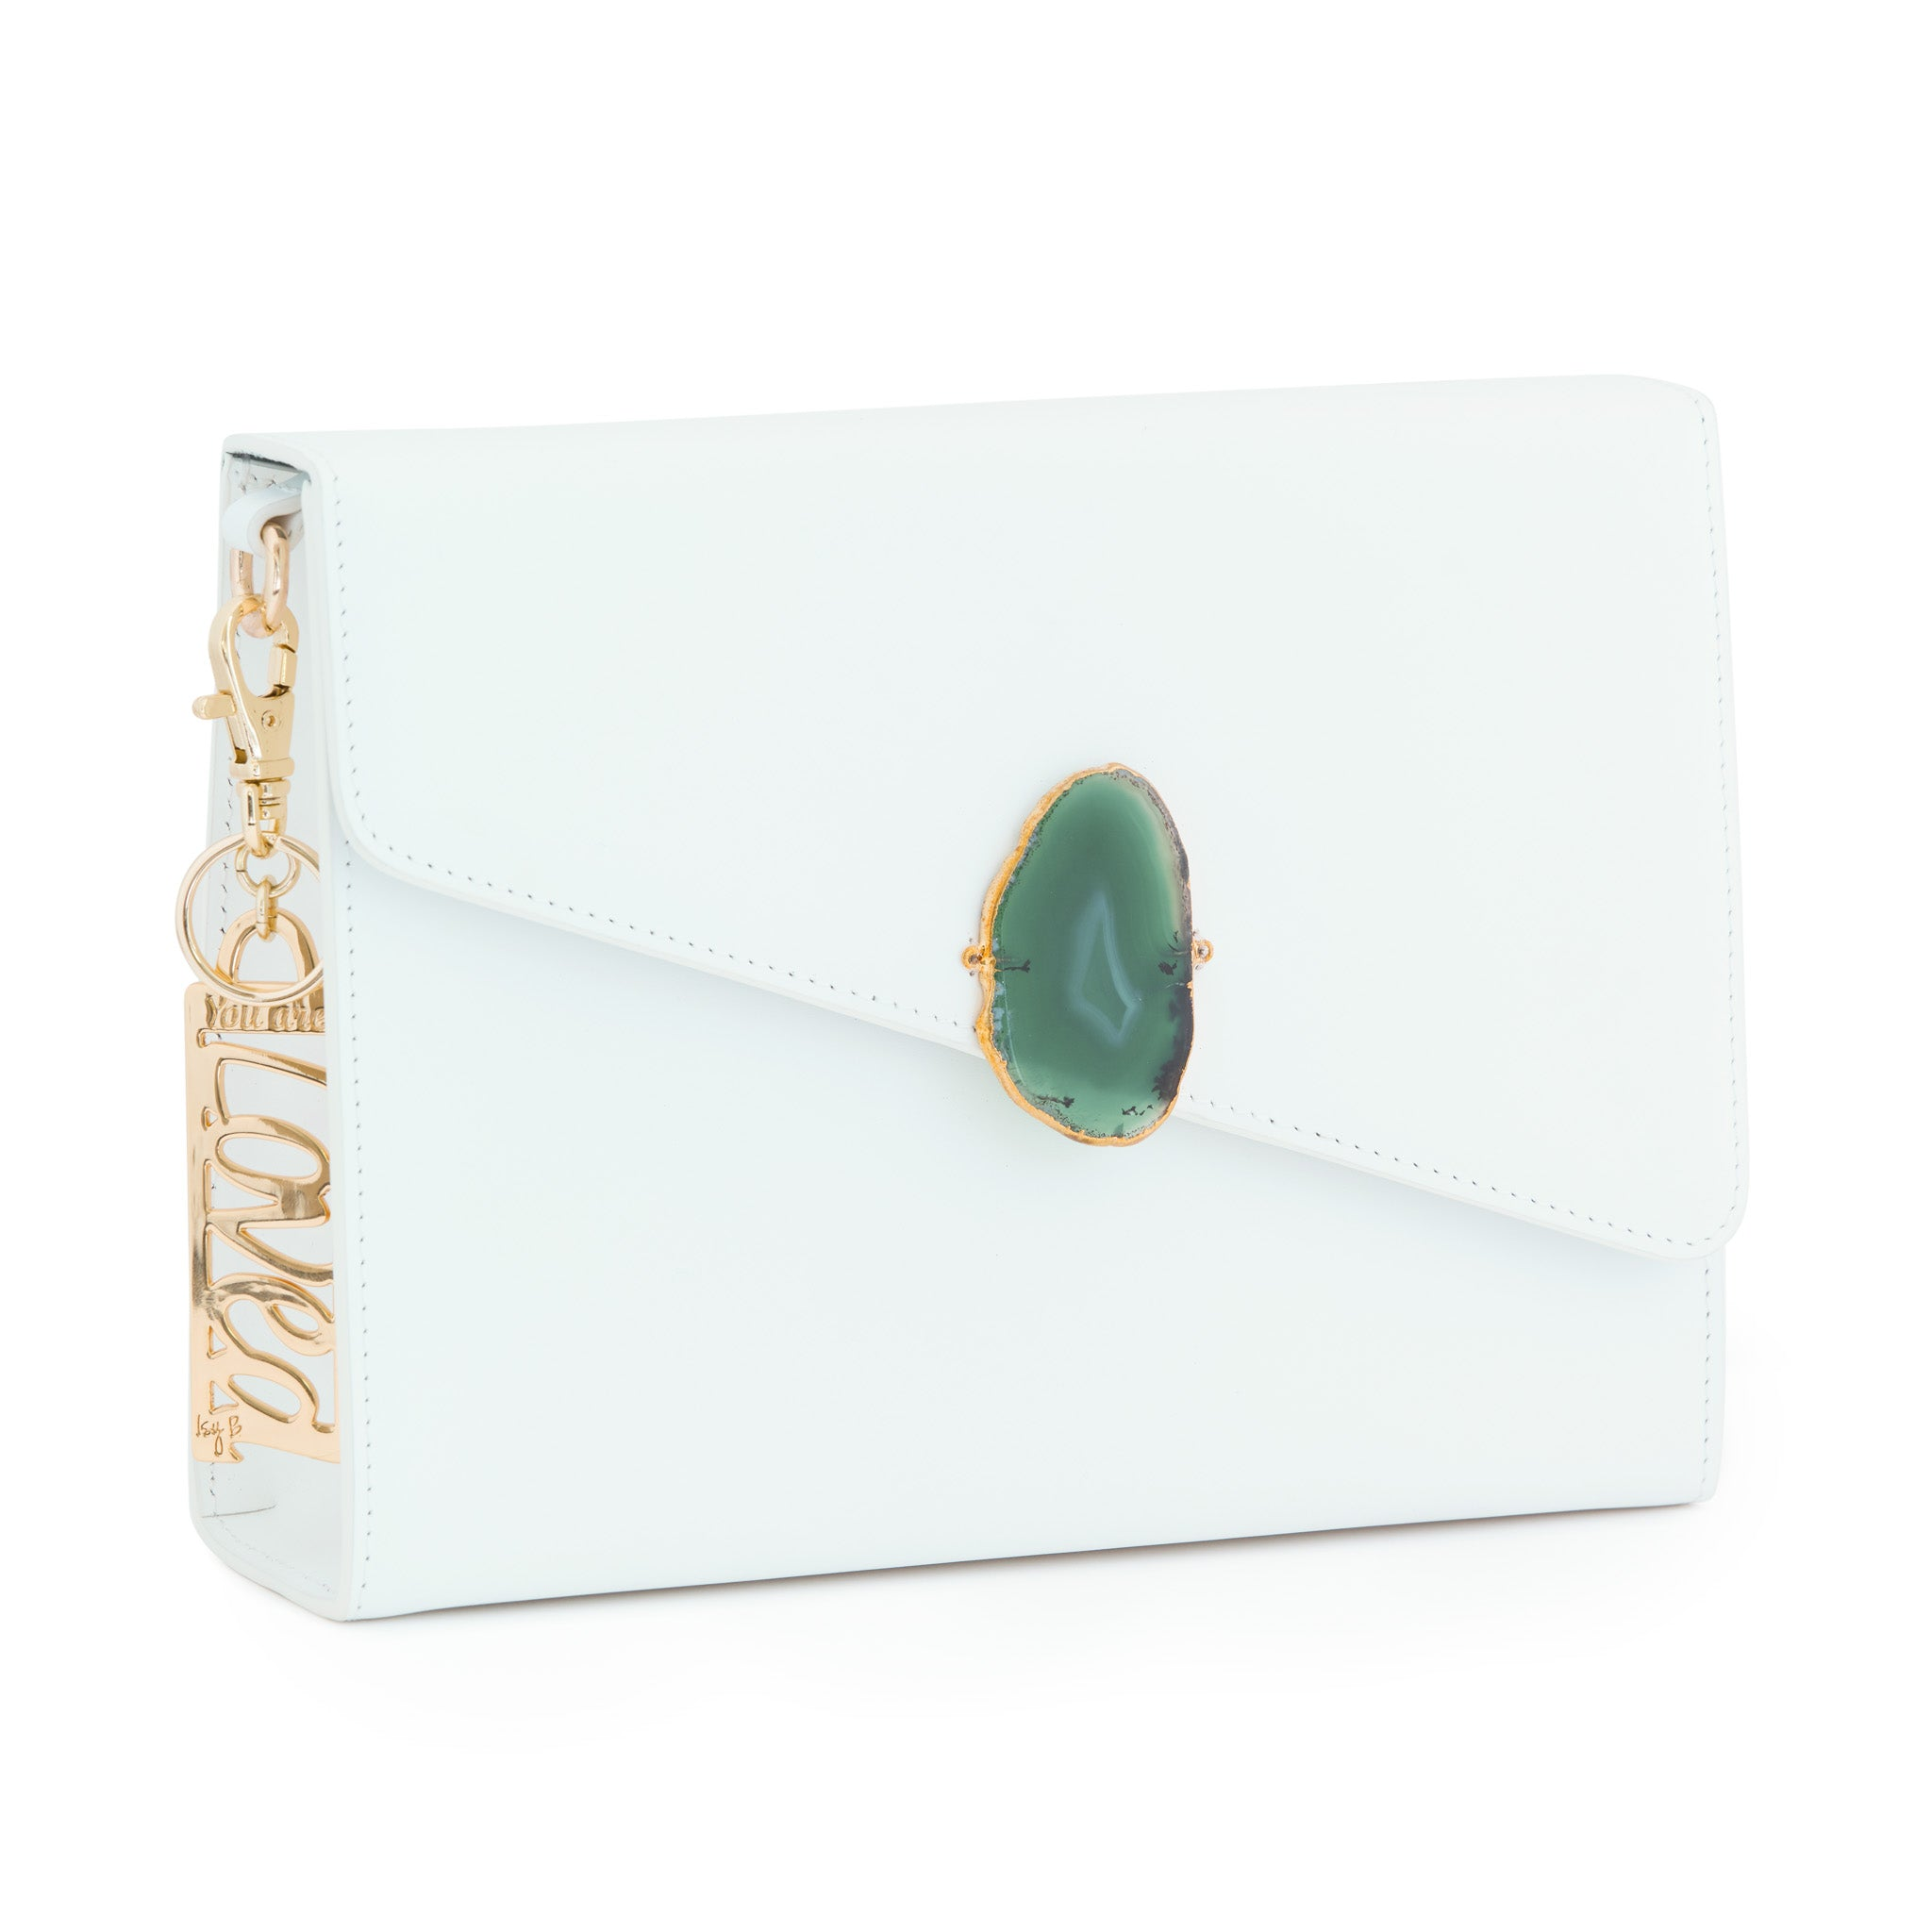 Loved Bag - Moonstone White Leather with Green Agate